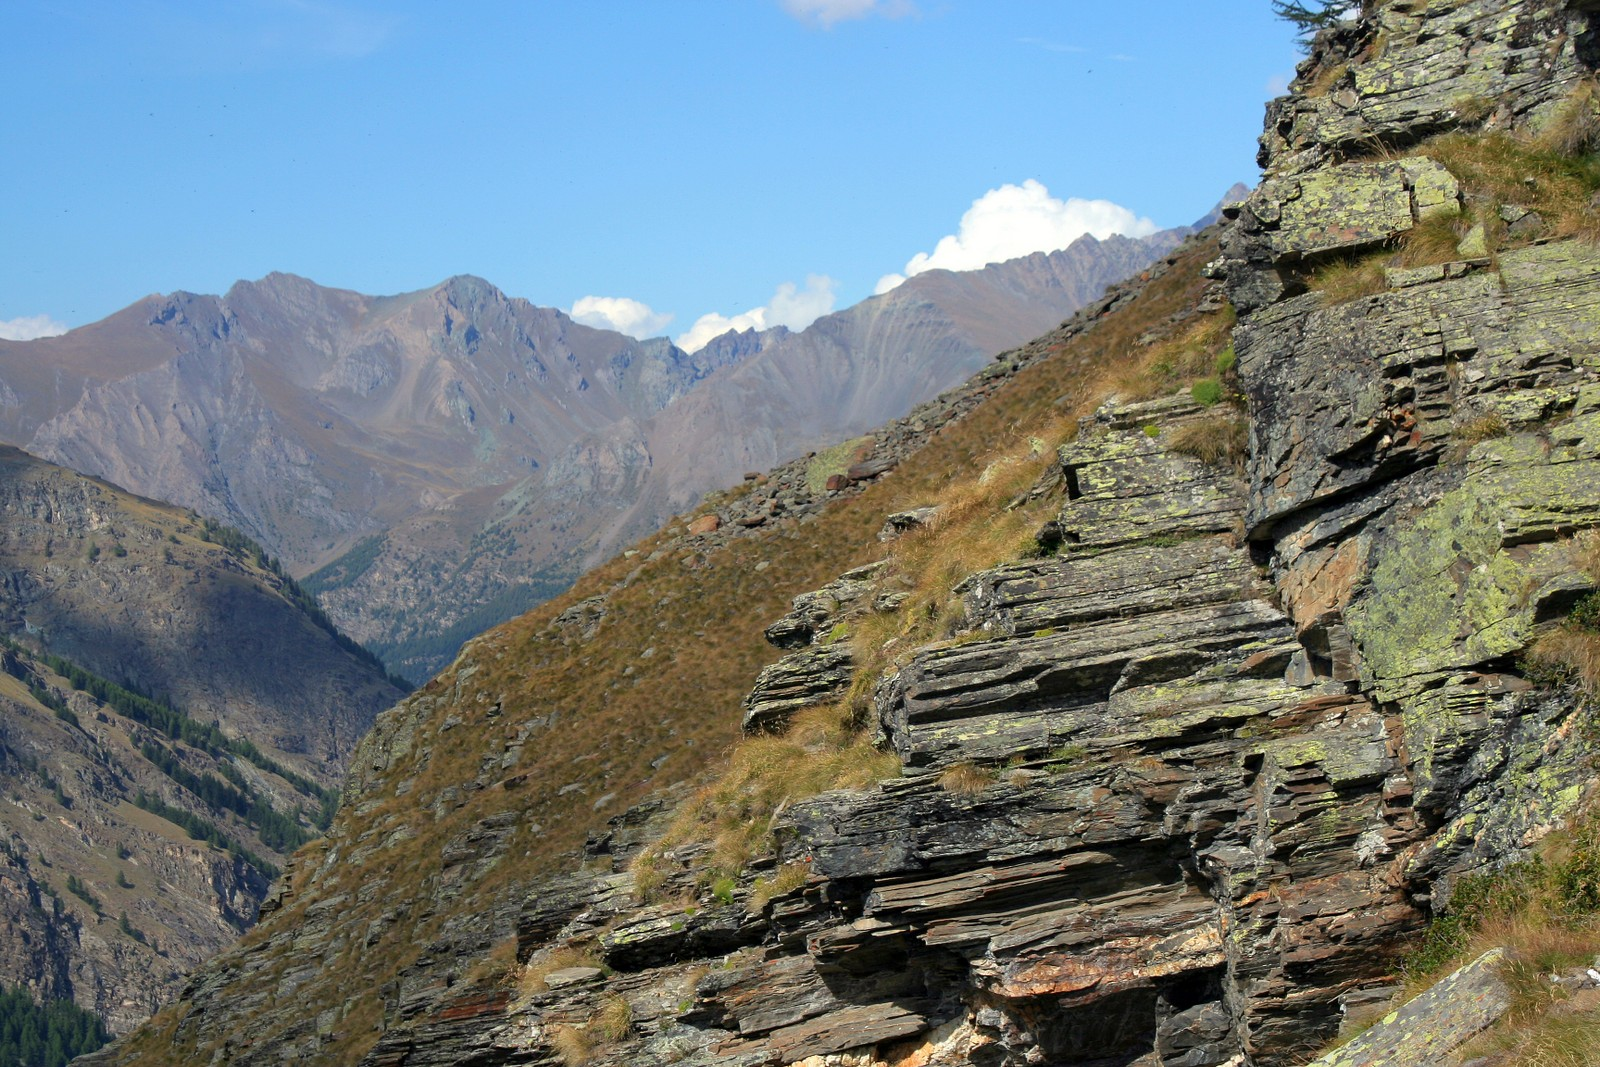 View from Alpe Money trail, Parco Nazionale Gran Paradiso, Italy